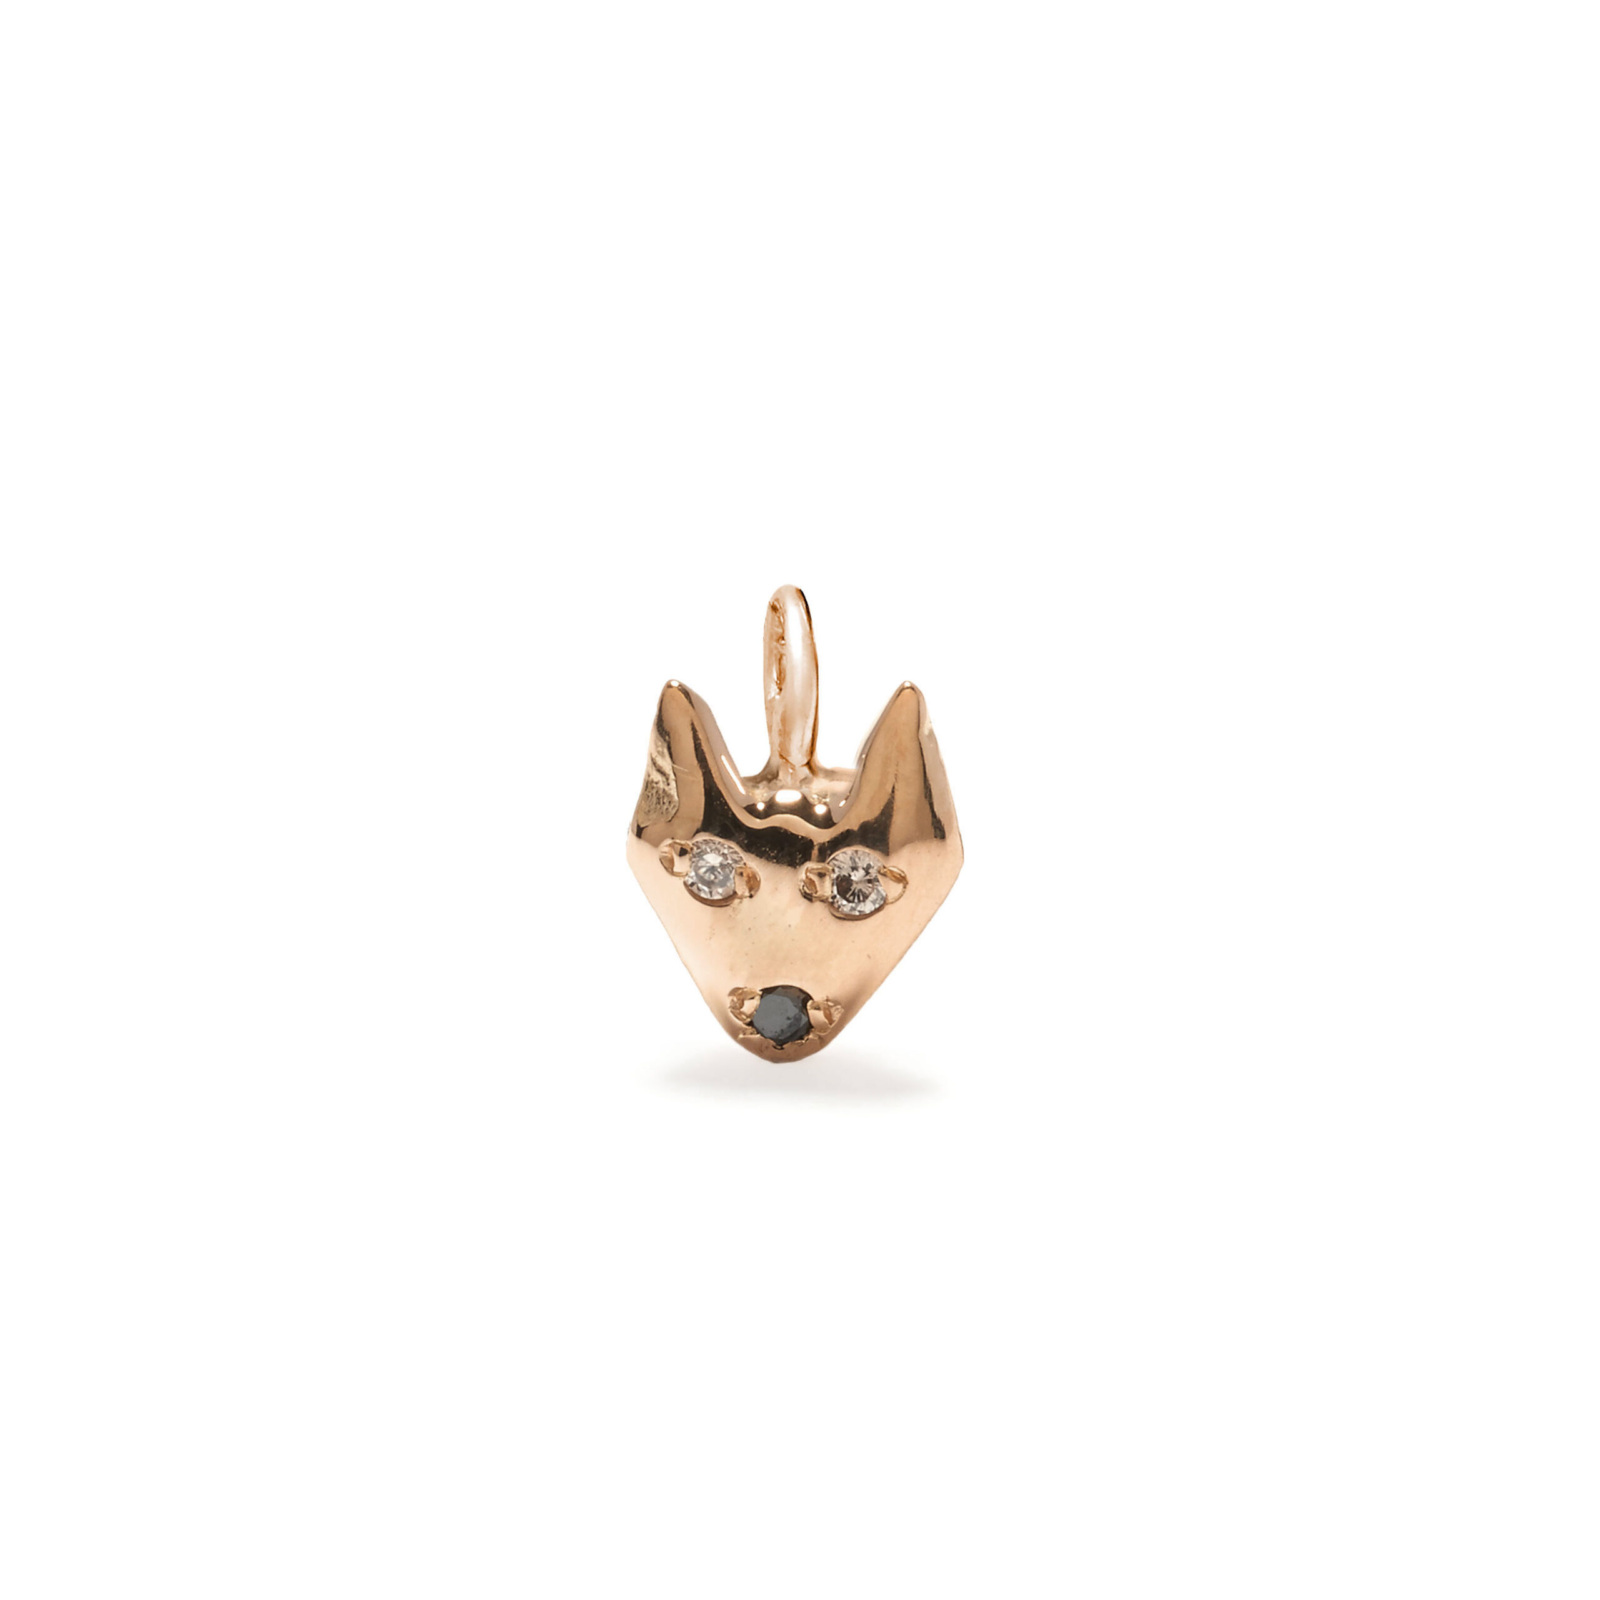 puppy dog charm jewelry - pink gold